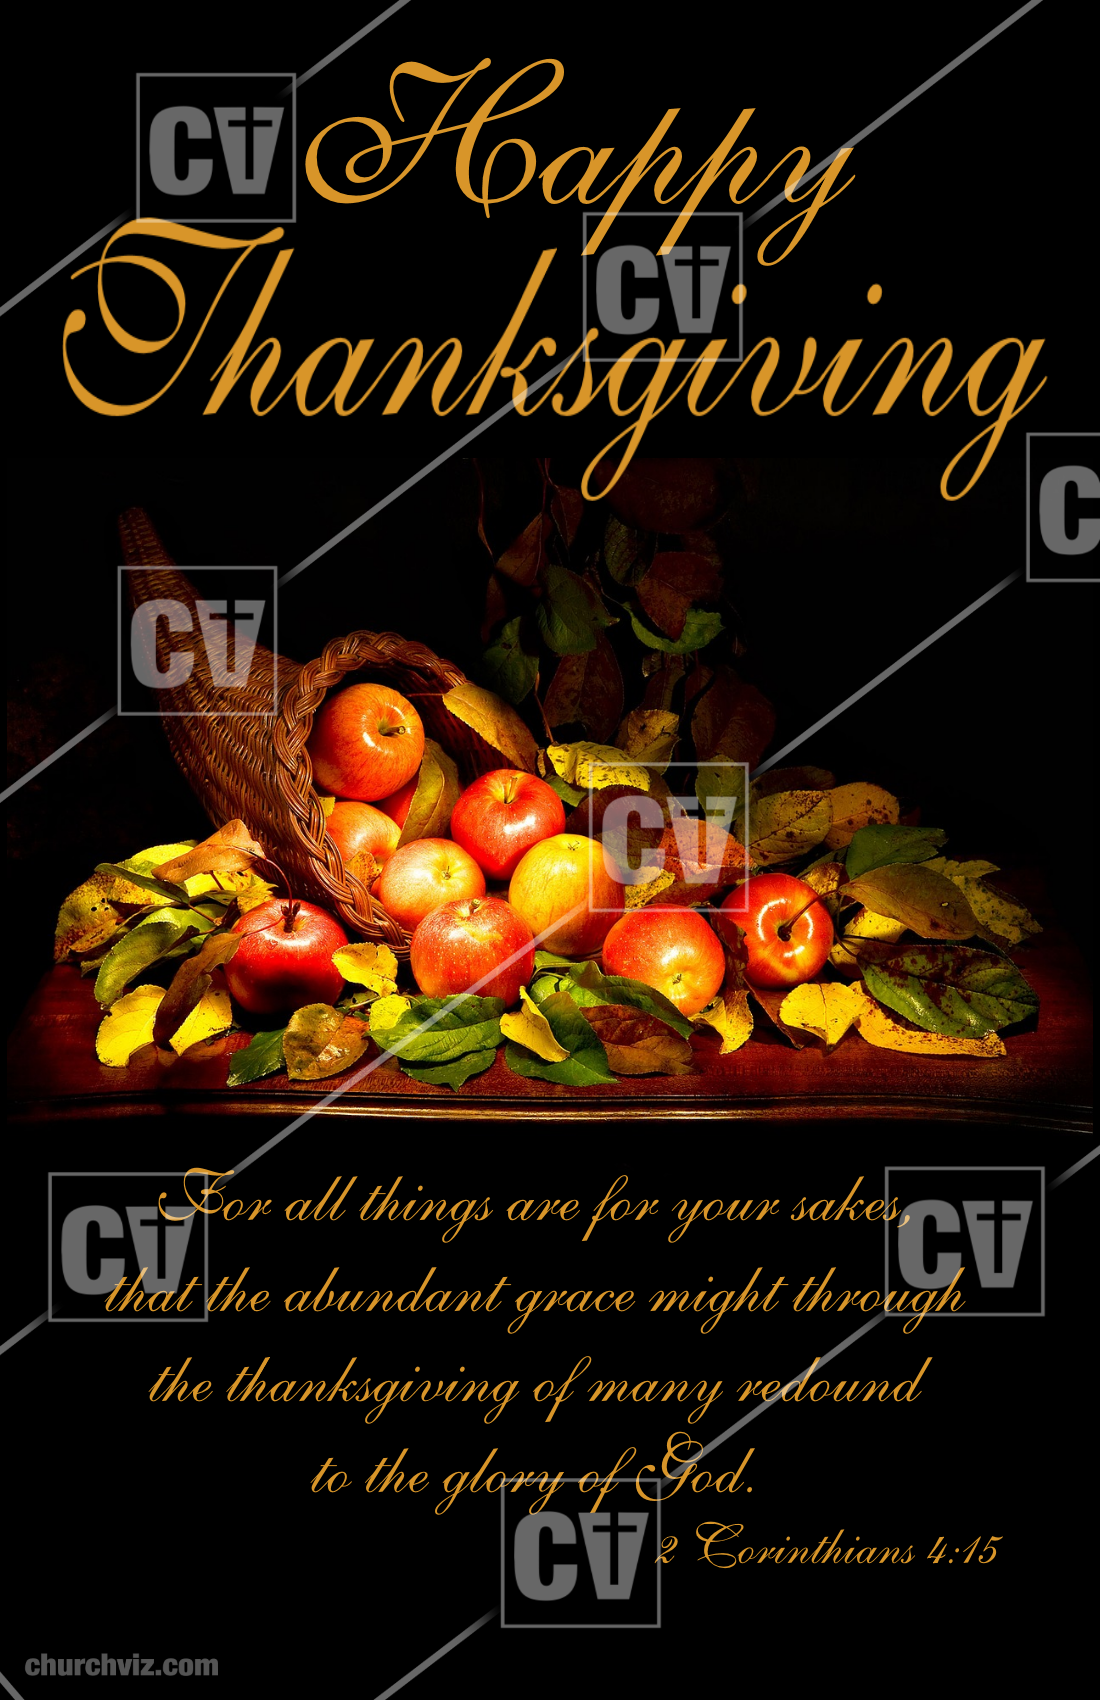 Share the holiday of Thanksgiving with your church